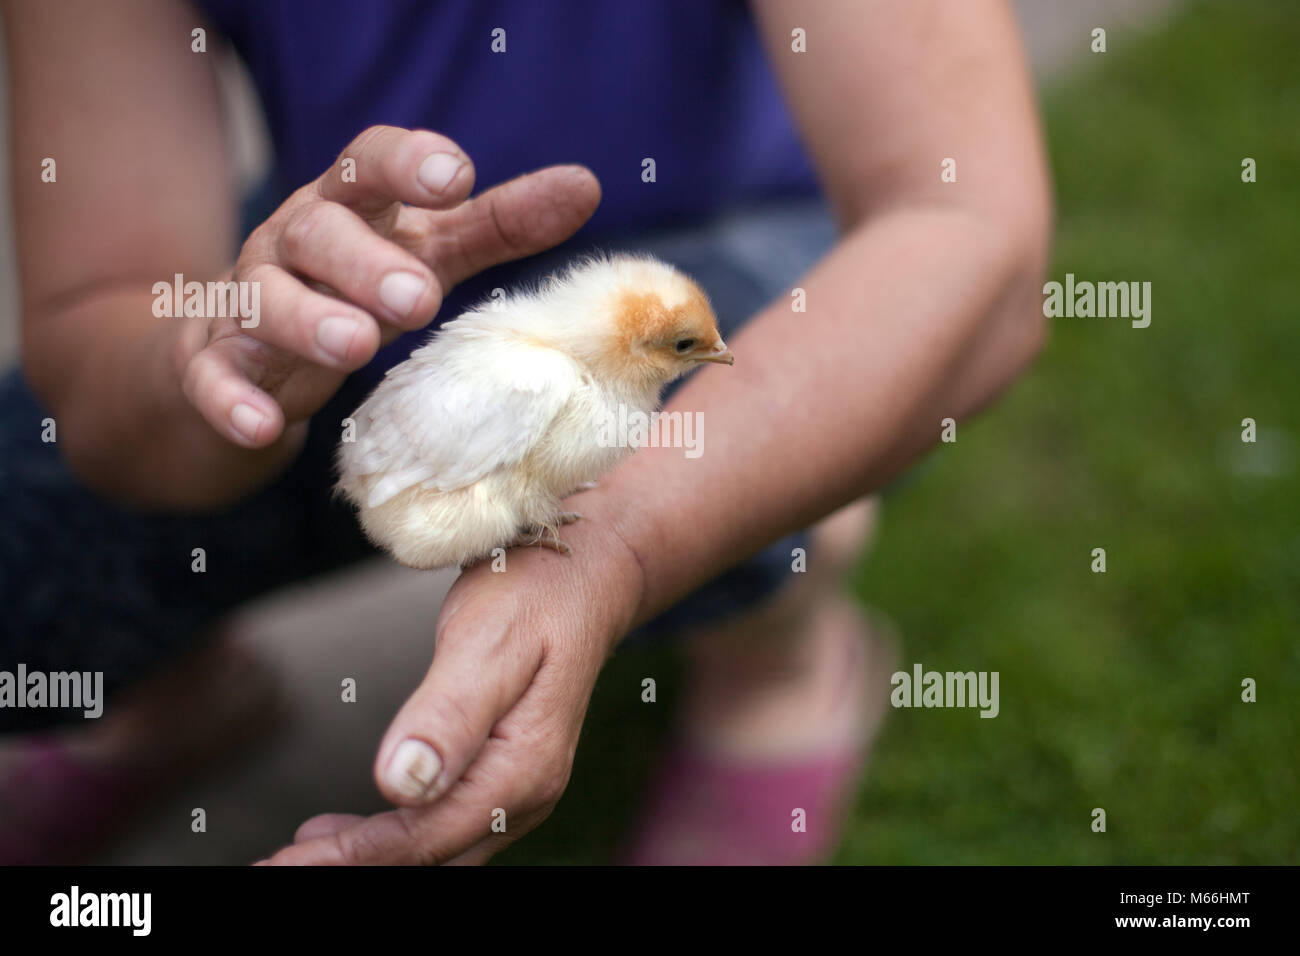 chickens, young chickens on the farm kept in hands - Stock Image